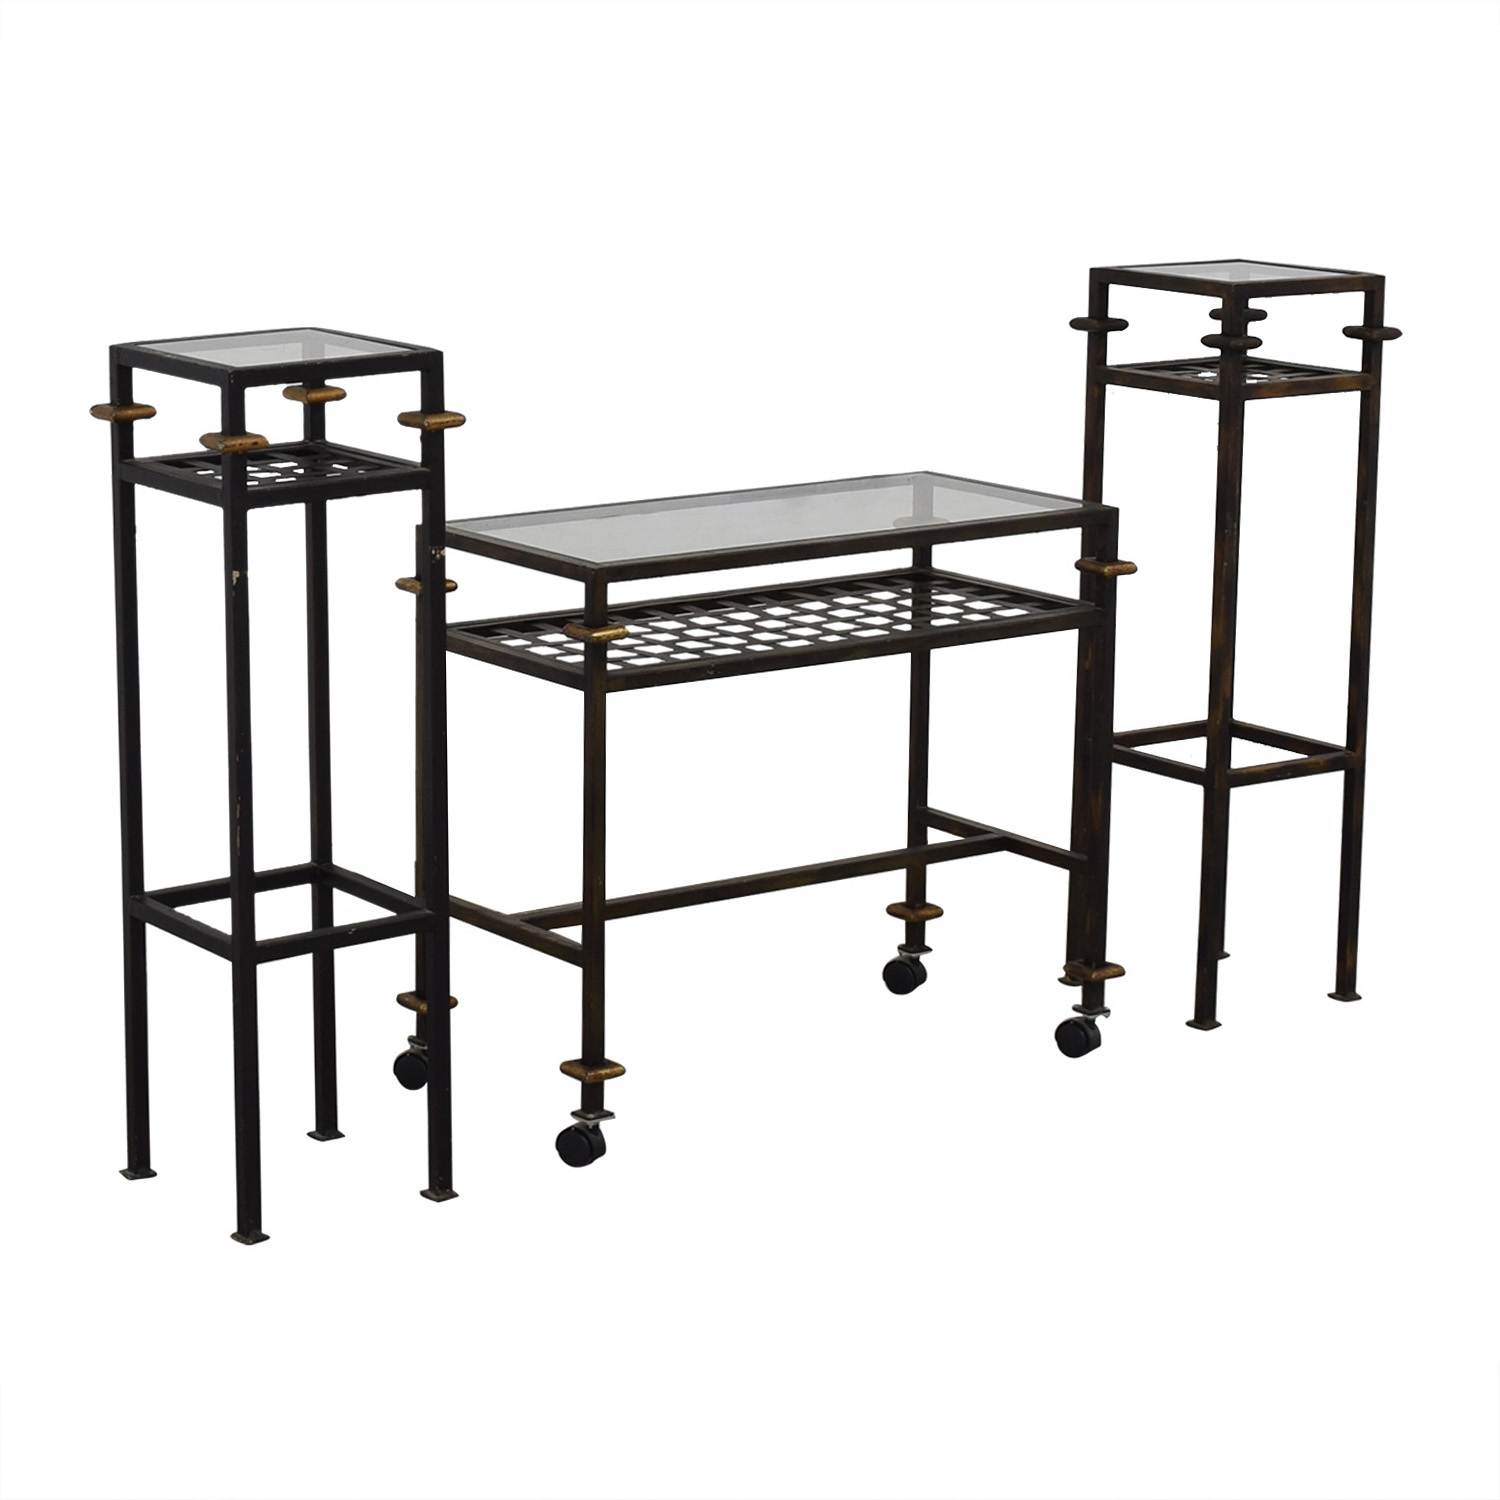 Rustic Glass Console with Matching End Tables used